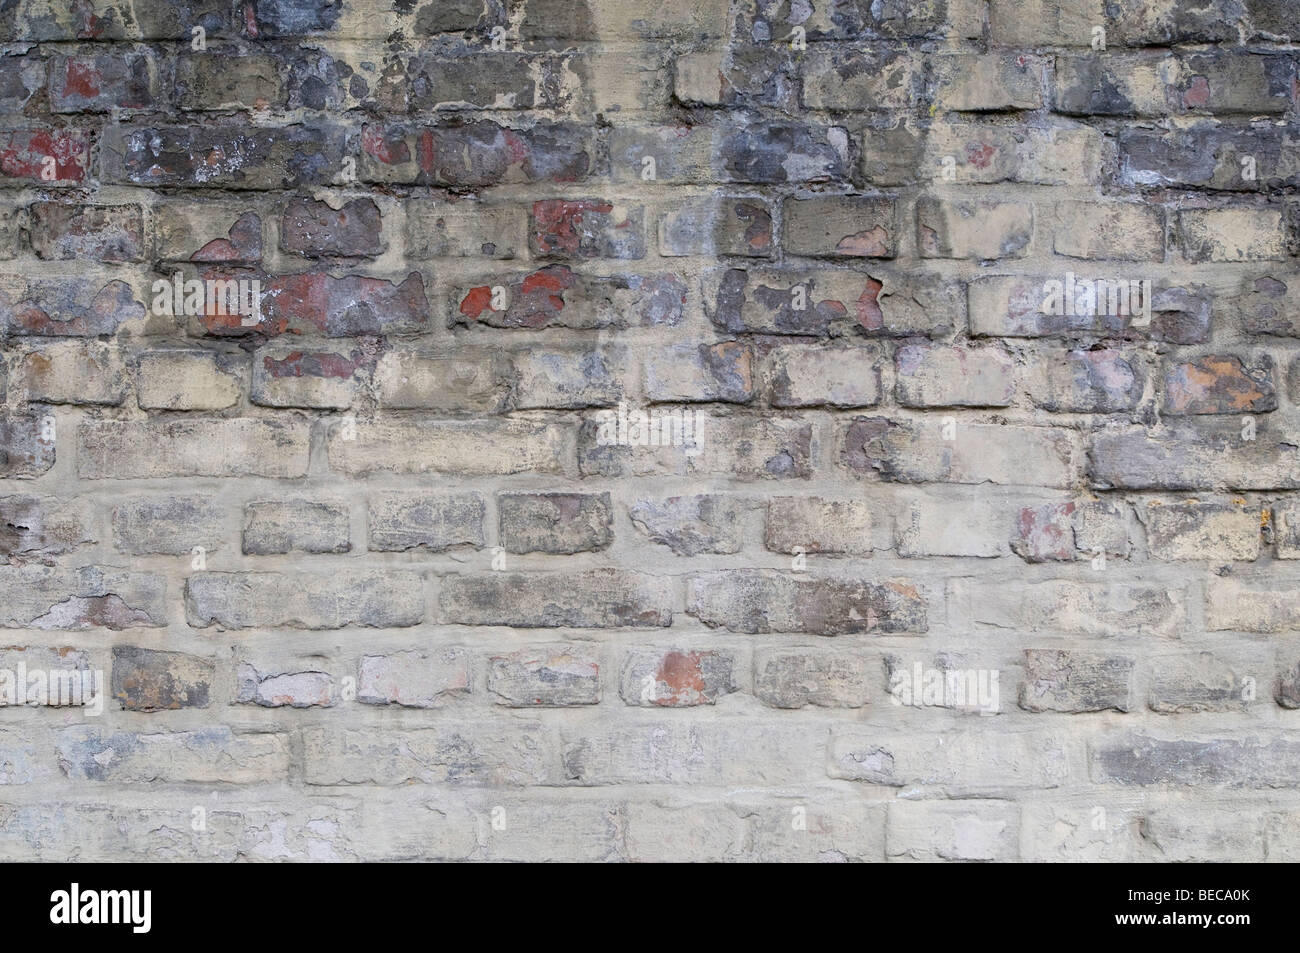 Old brick wall, background - Stock Image